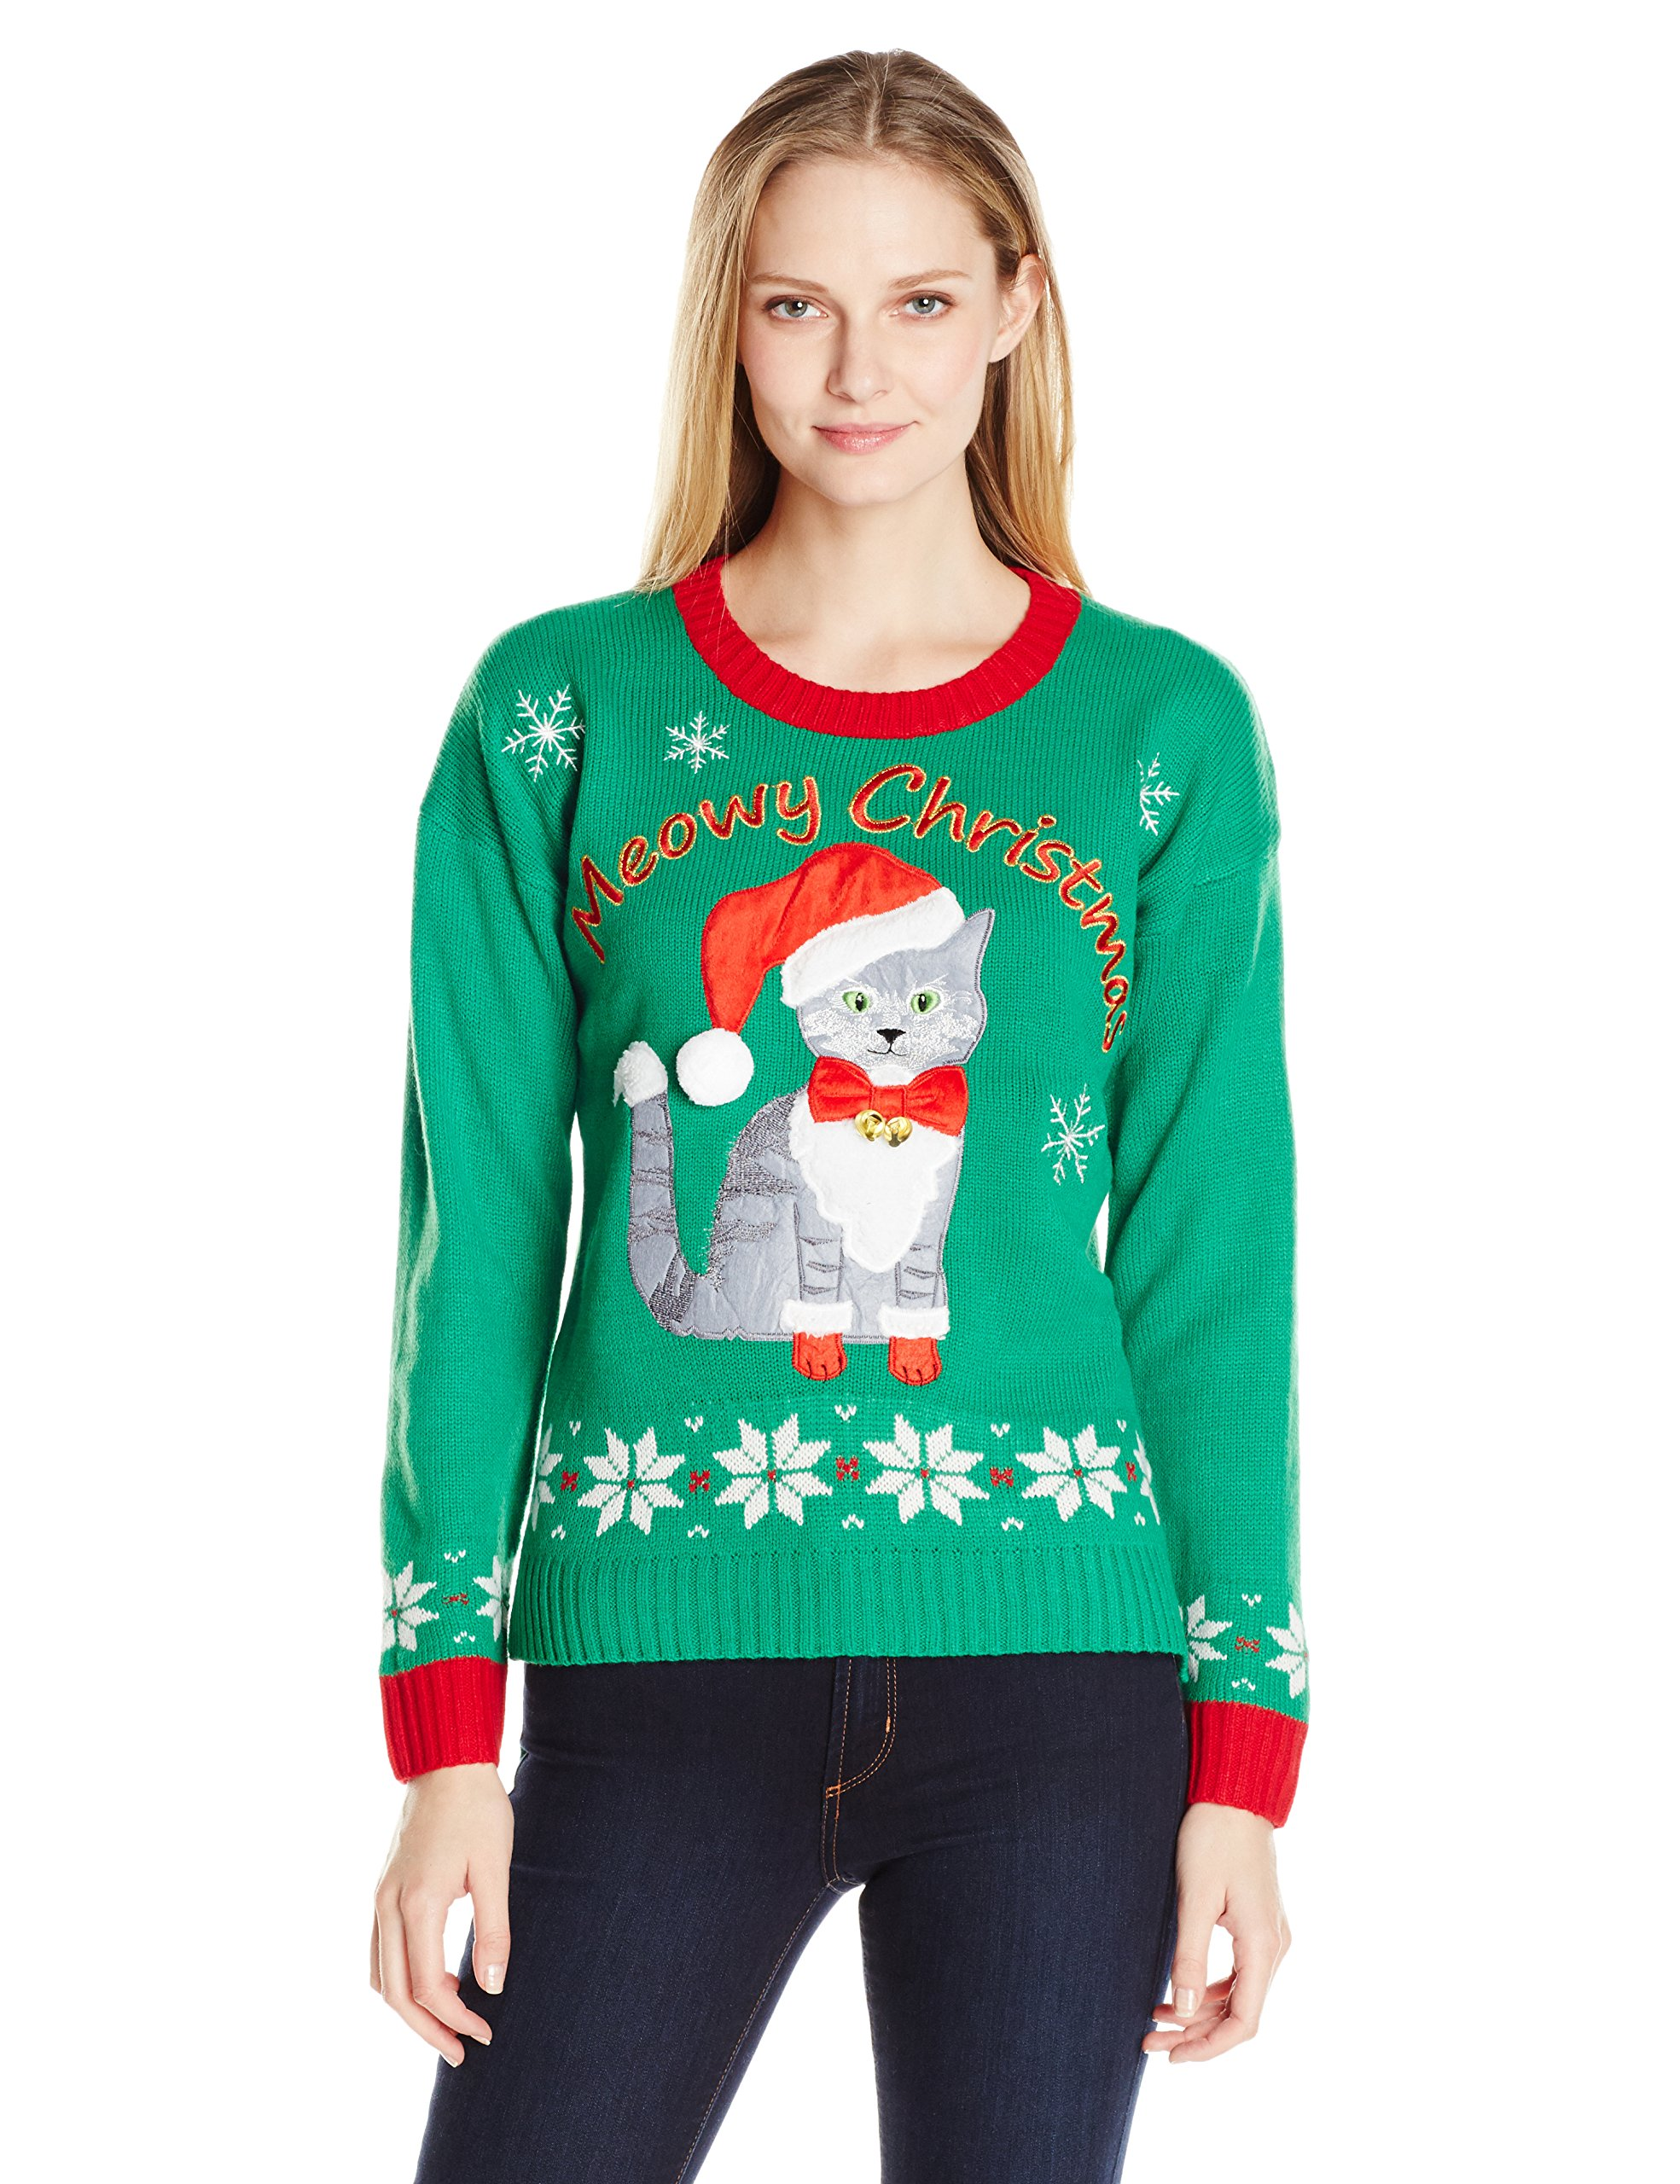 Blizzard Bay Women's Plus Size Meowy Kitty Ugly Christmas Sweater with Bells, Green/Red, L